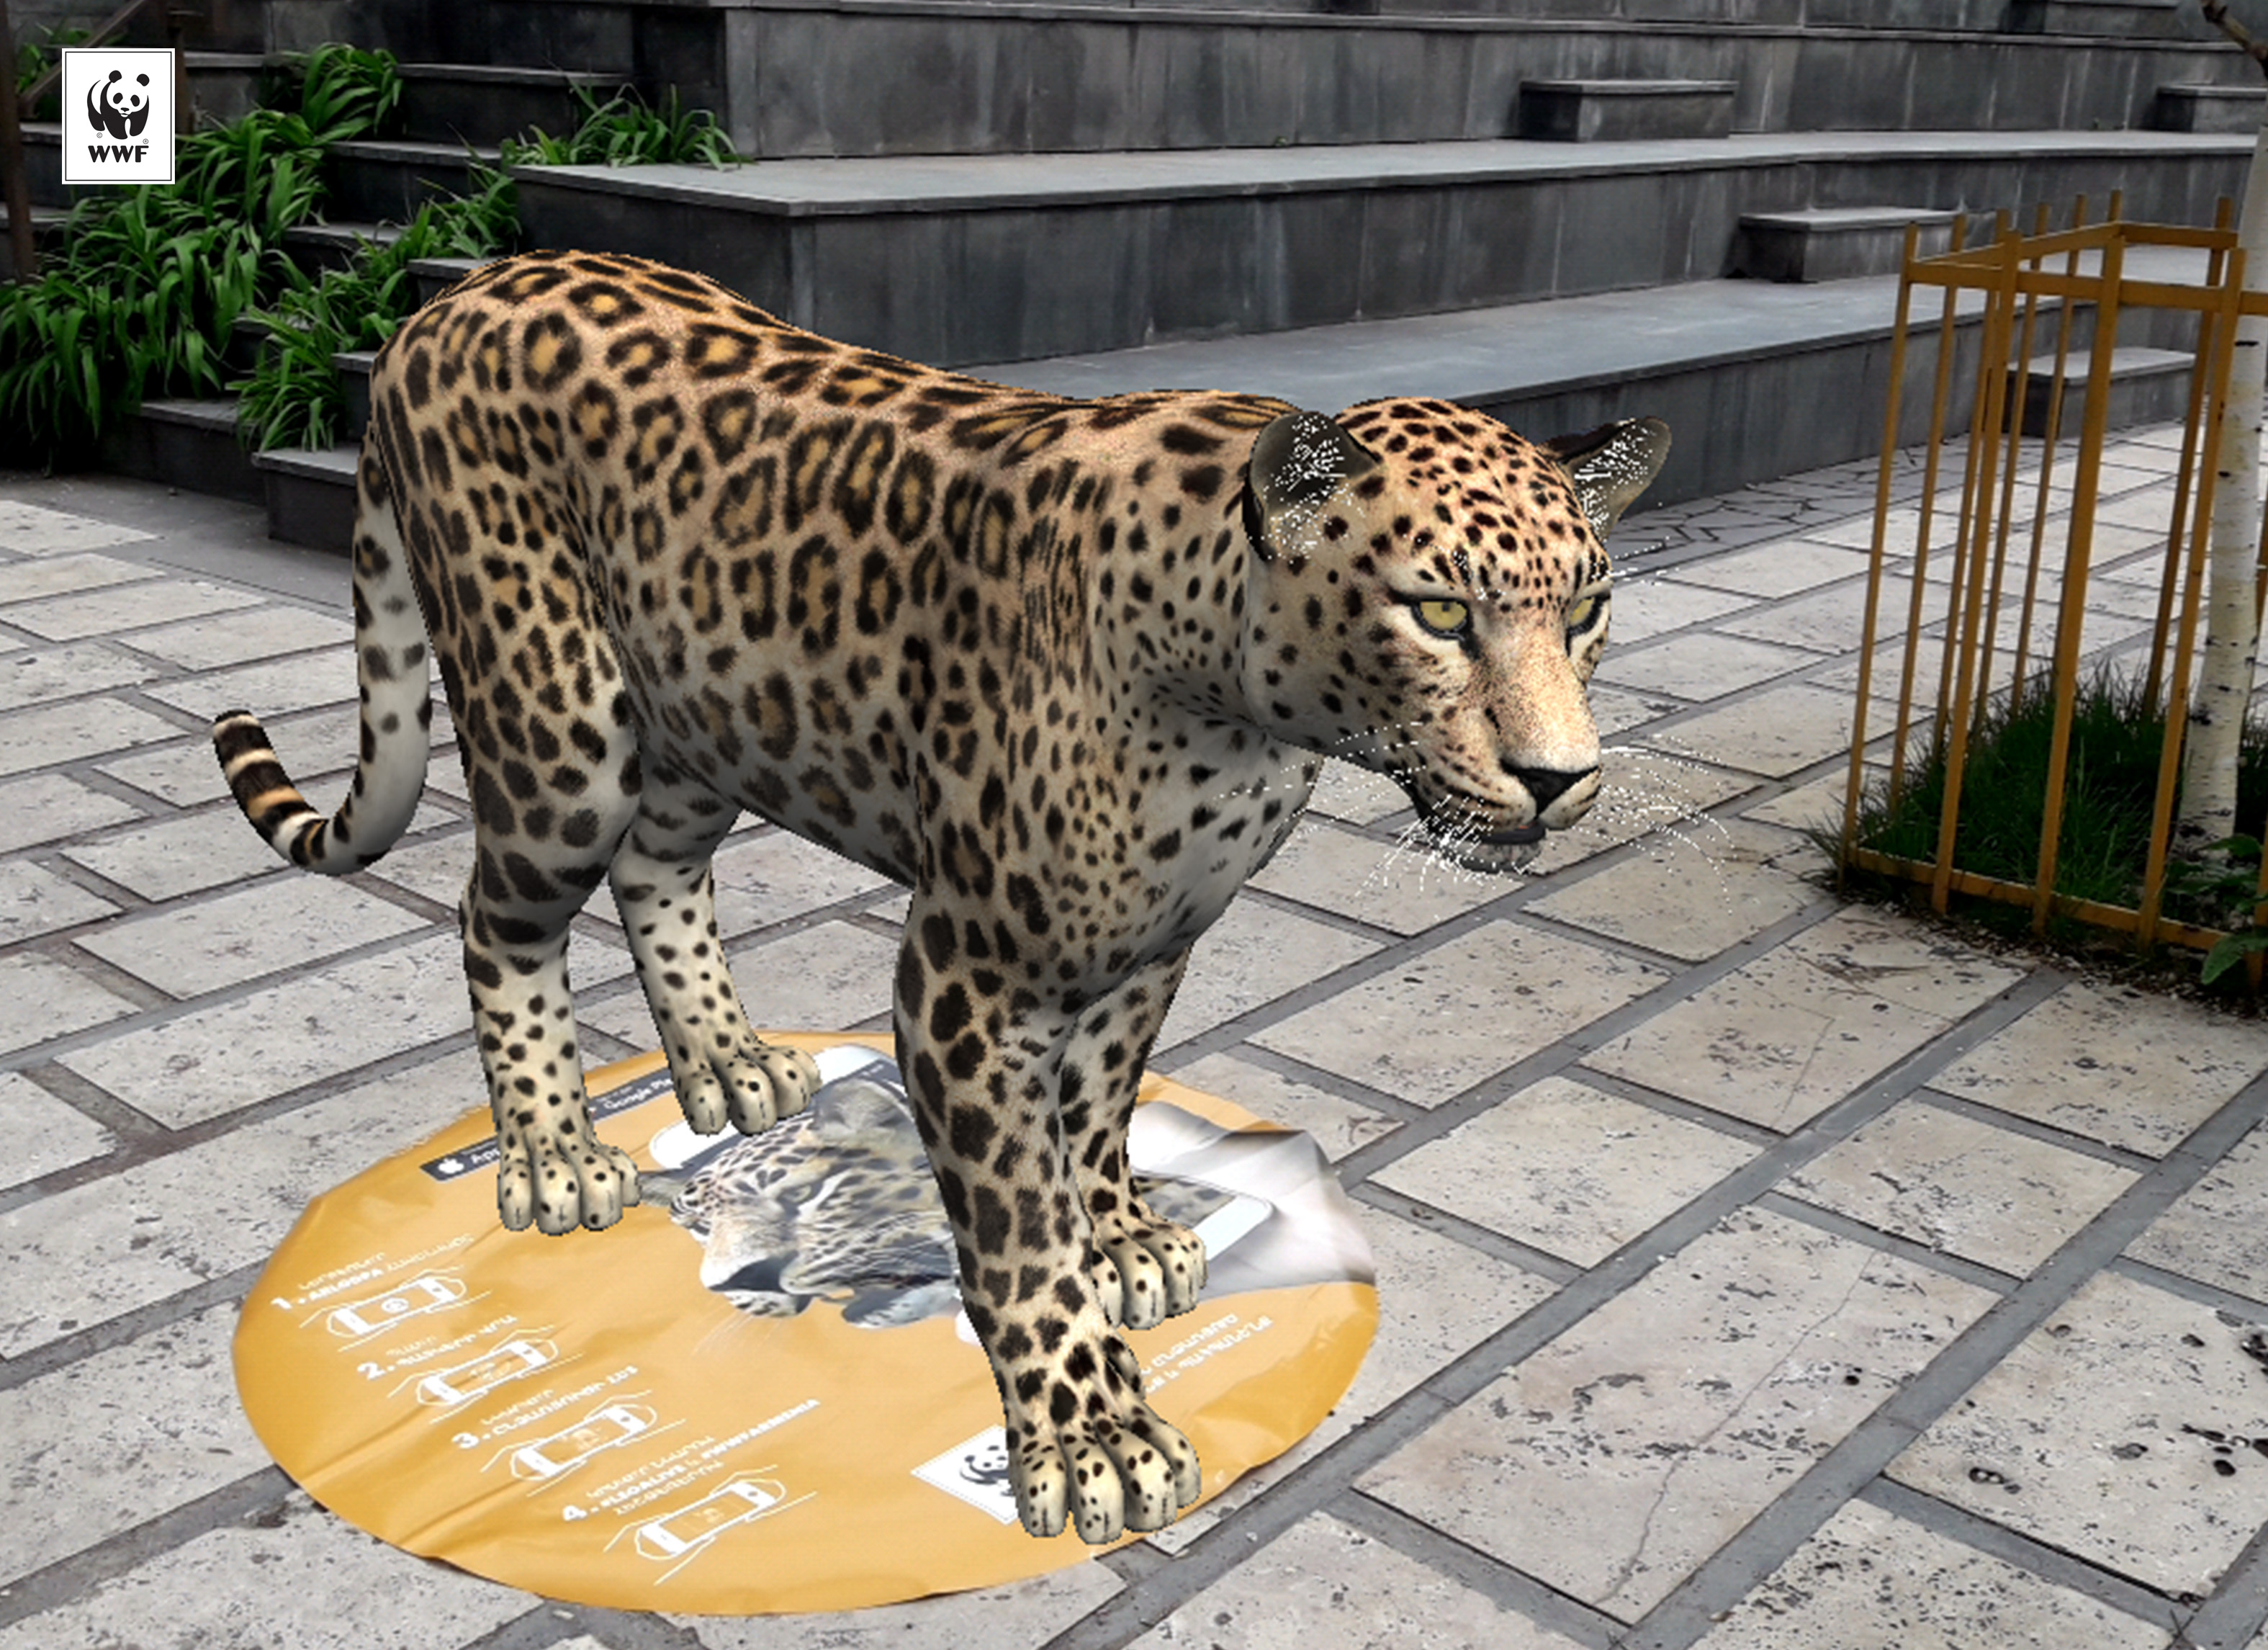 Take A Photo With The Leopard Environmental Information Campaign